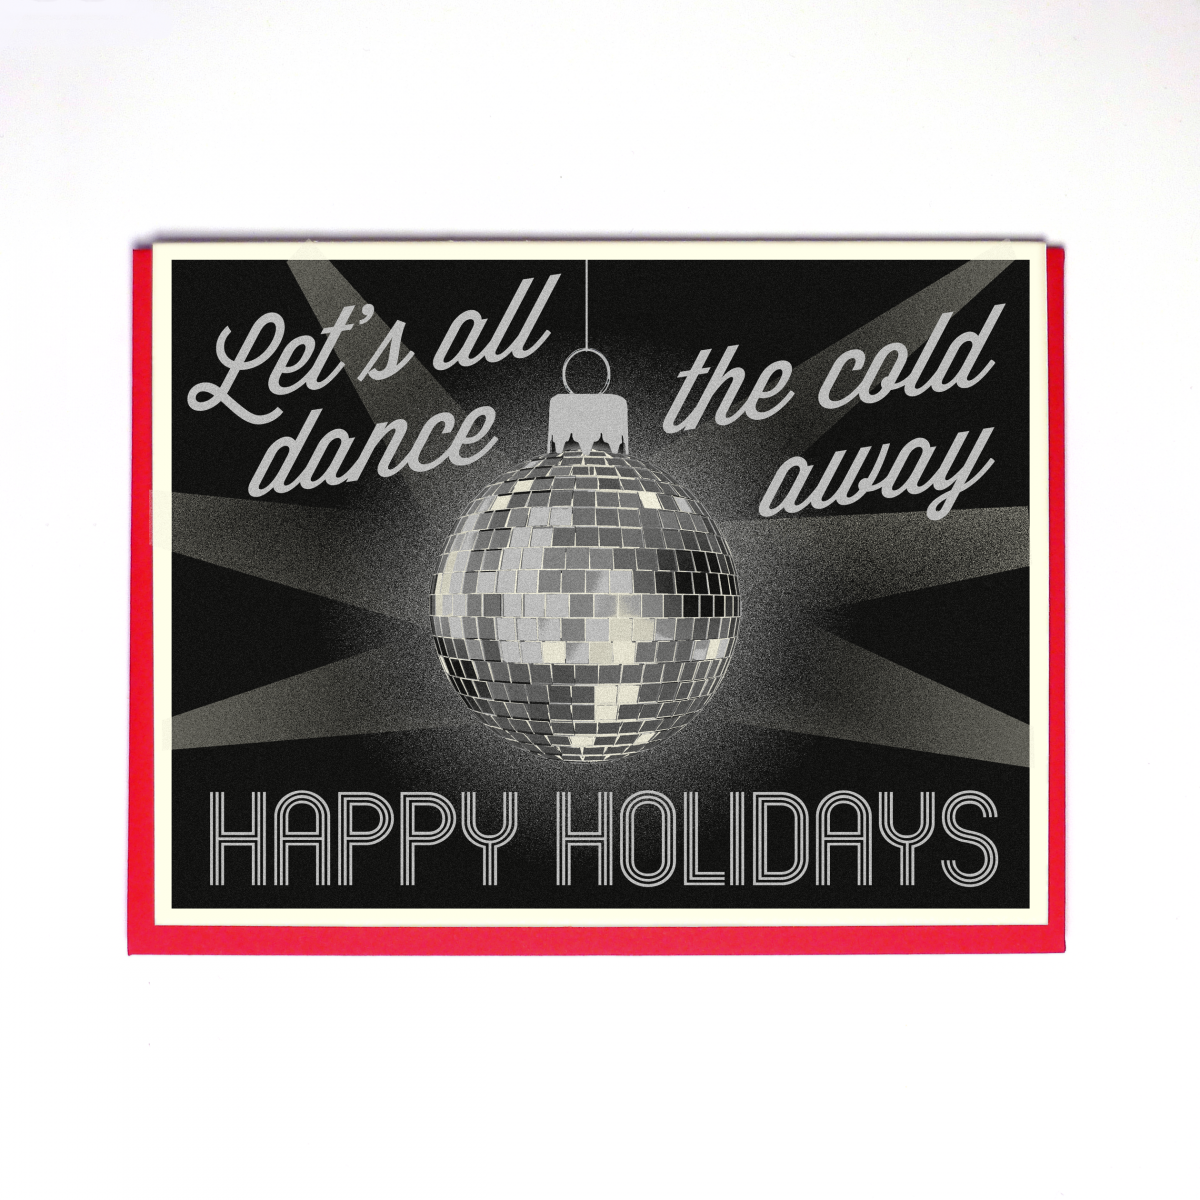 Kid Icarus Holiday - Lets all dance the cold away